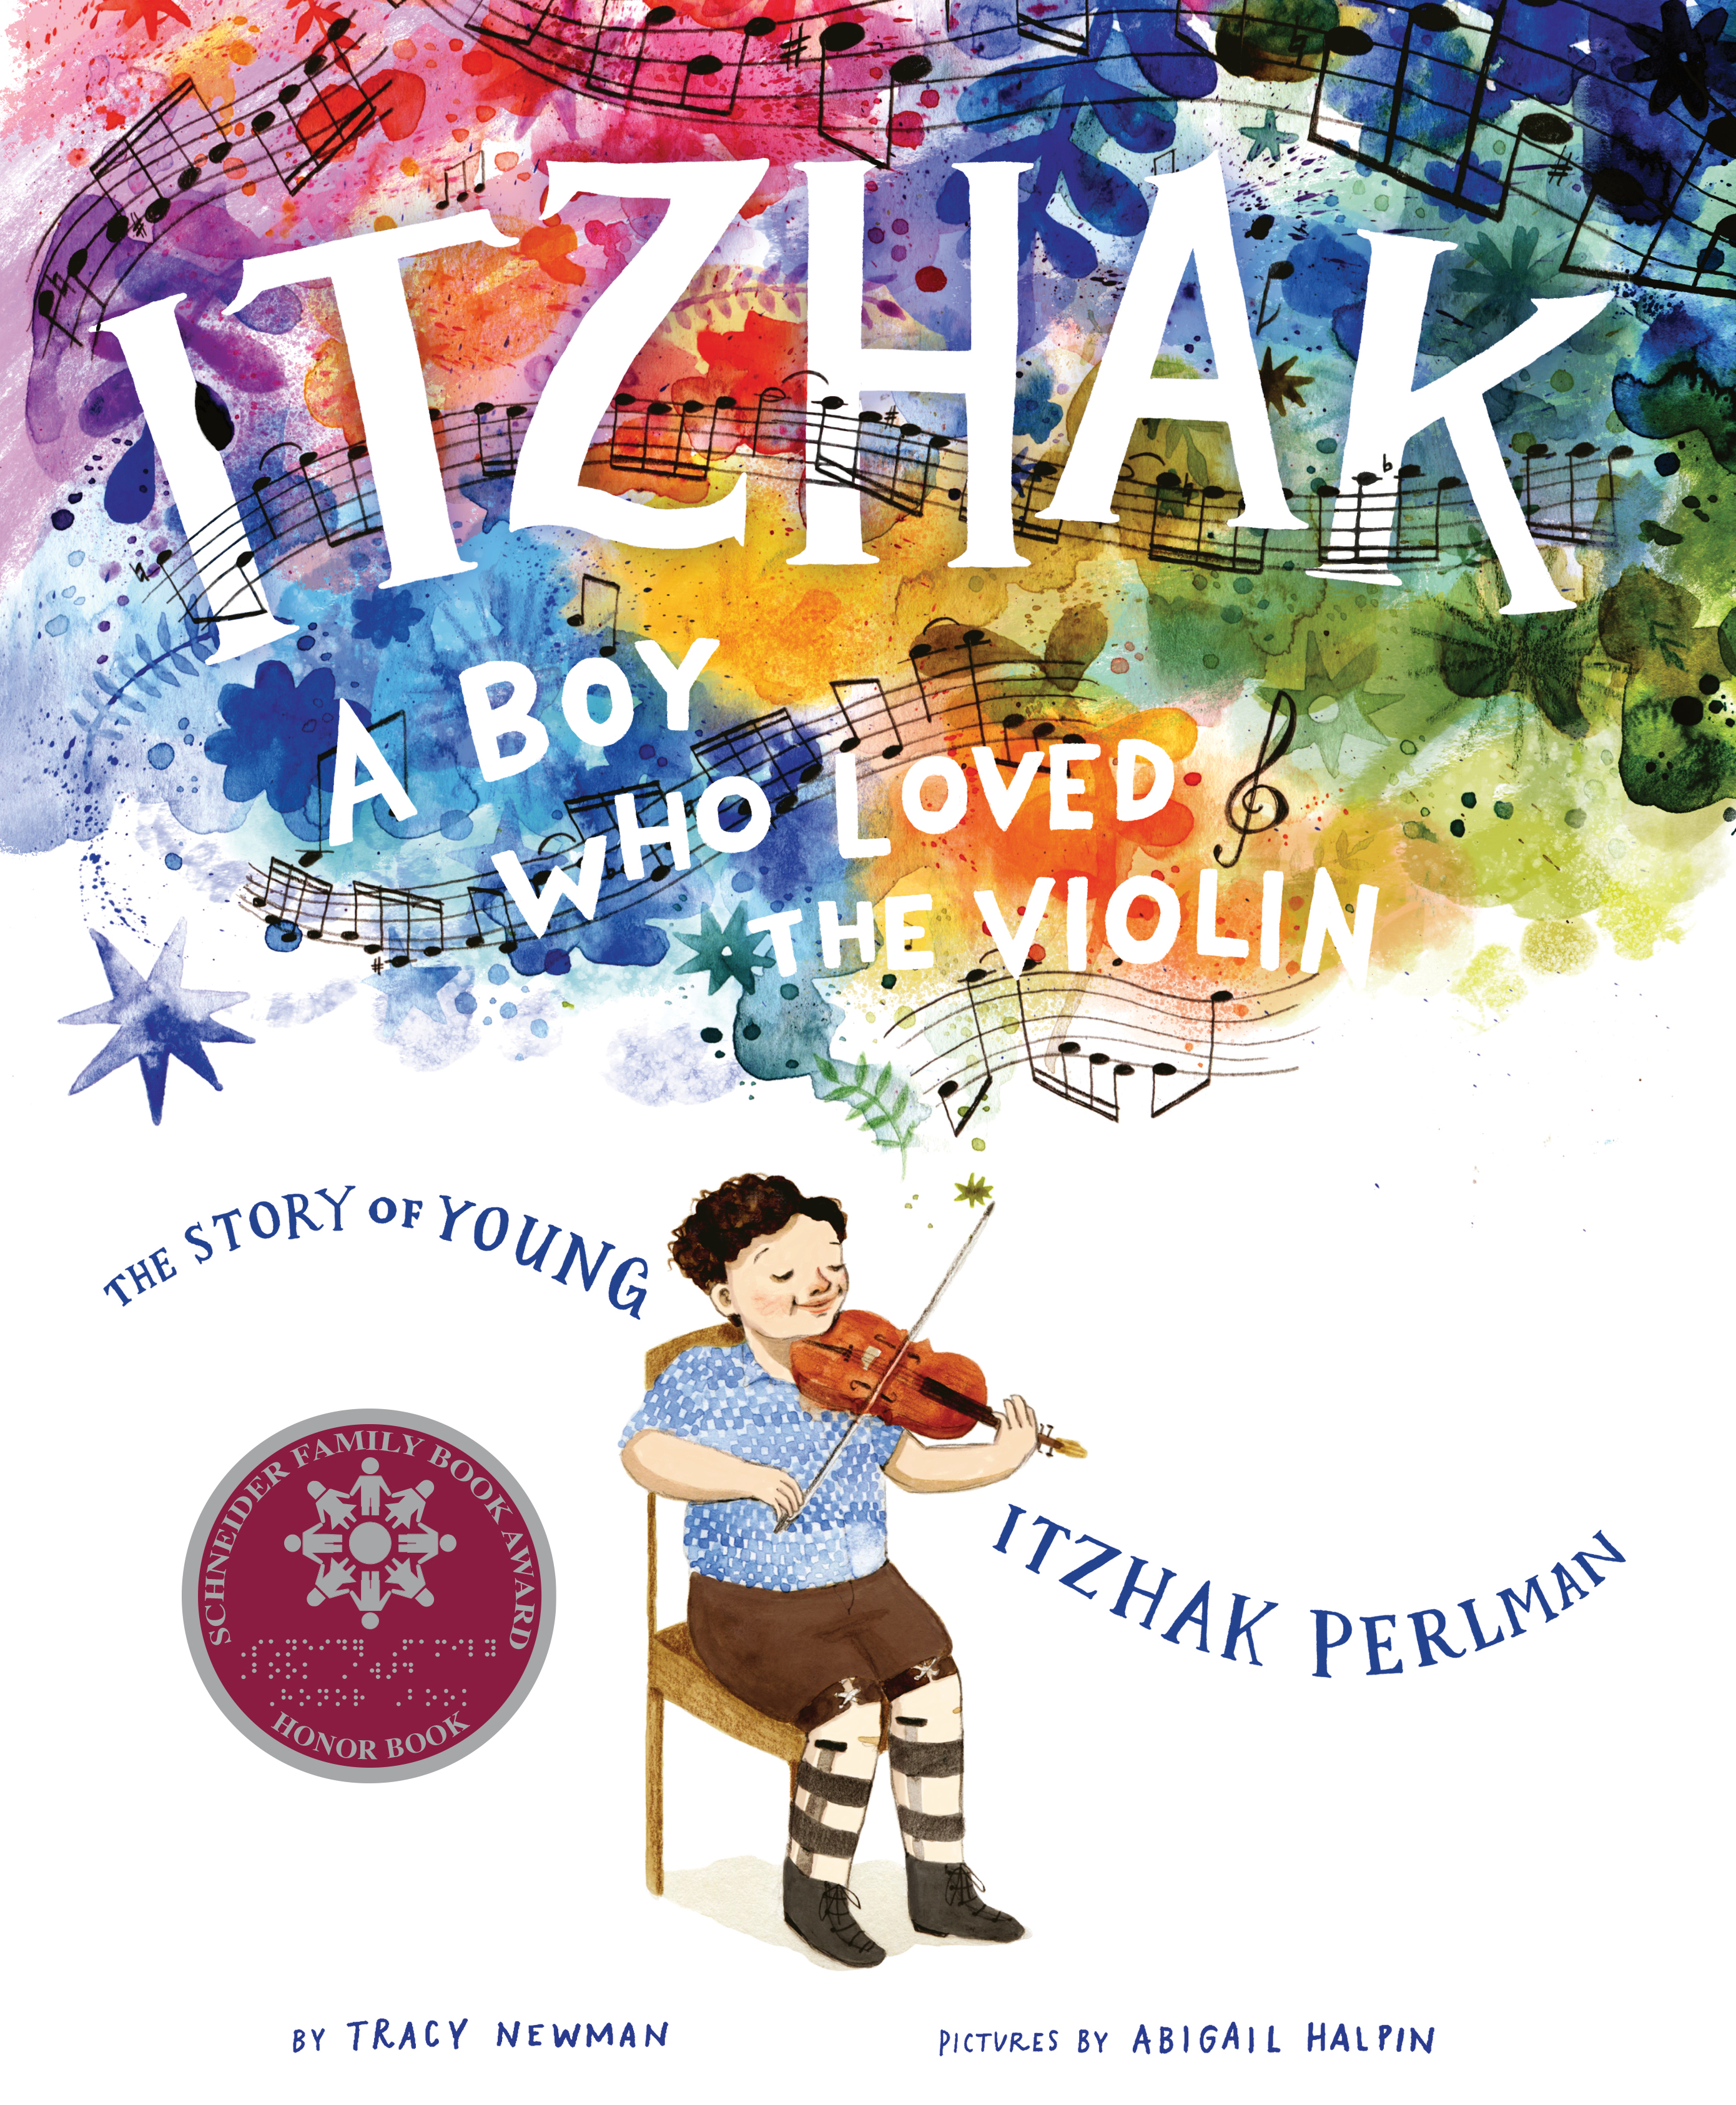 Itzhak [electronic resource] : A Boy Who Loved the Violin